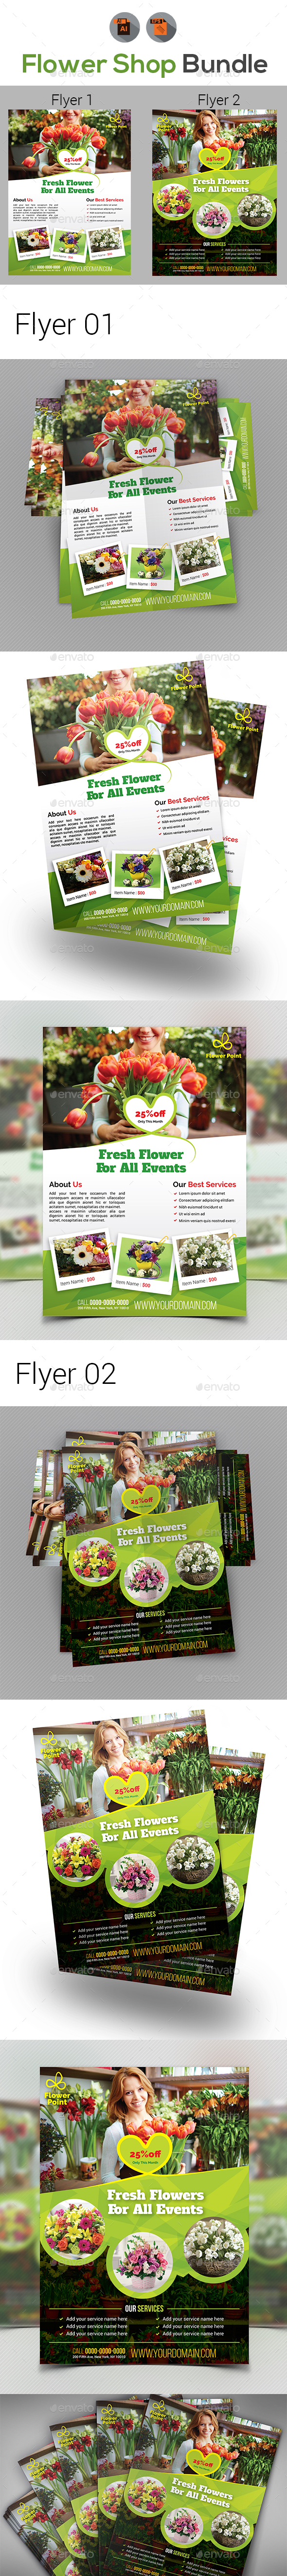 Flower Shop Flyer Bundle - Flyers Print Templates